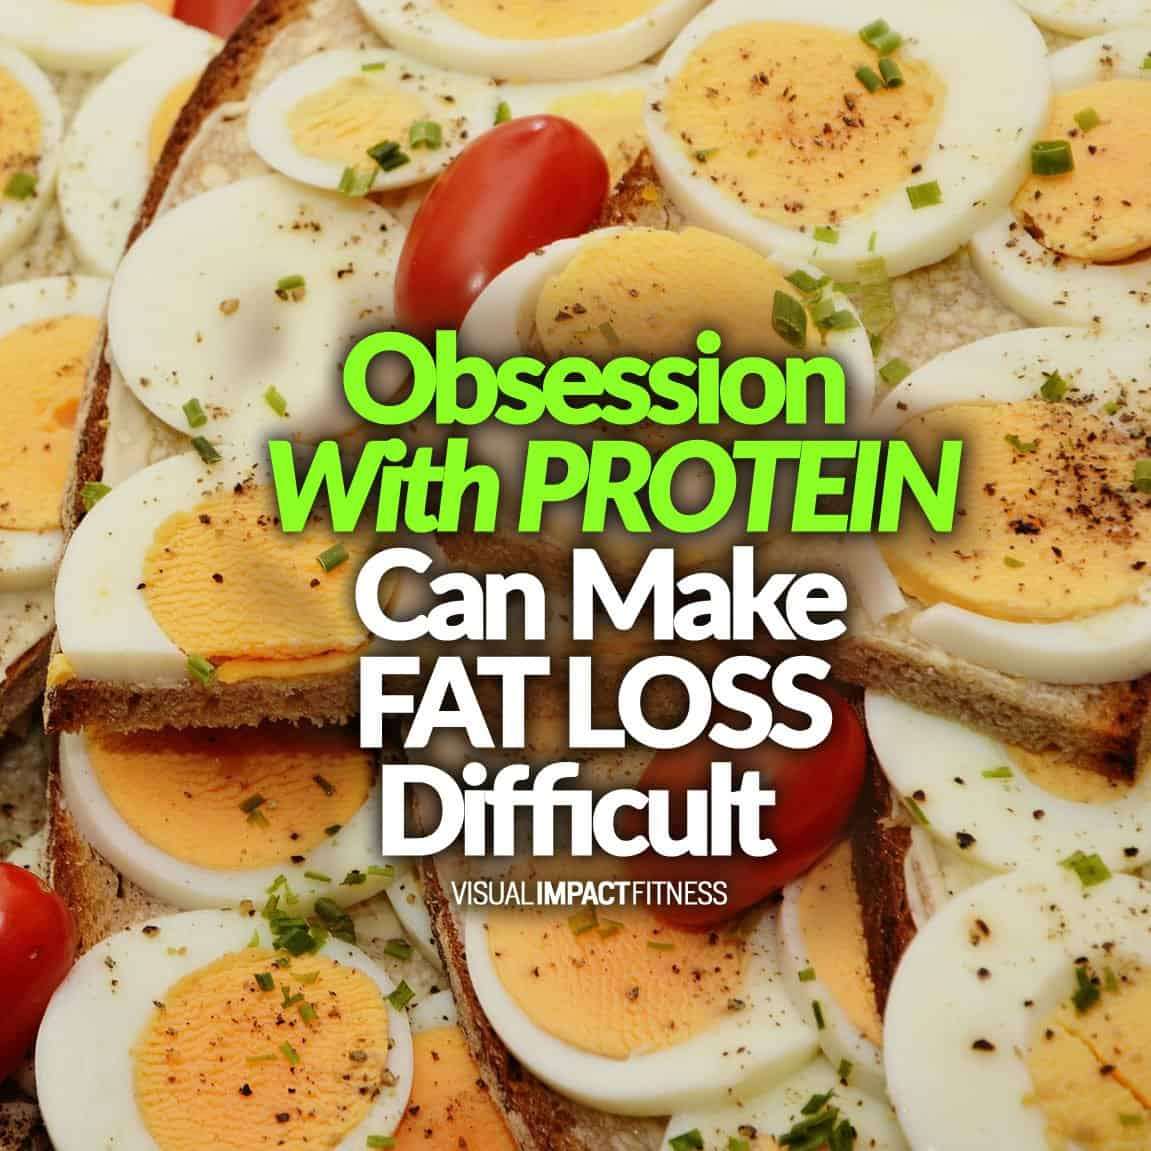 Obsession With PROTEIN Can Make FAT LOSS Difficult